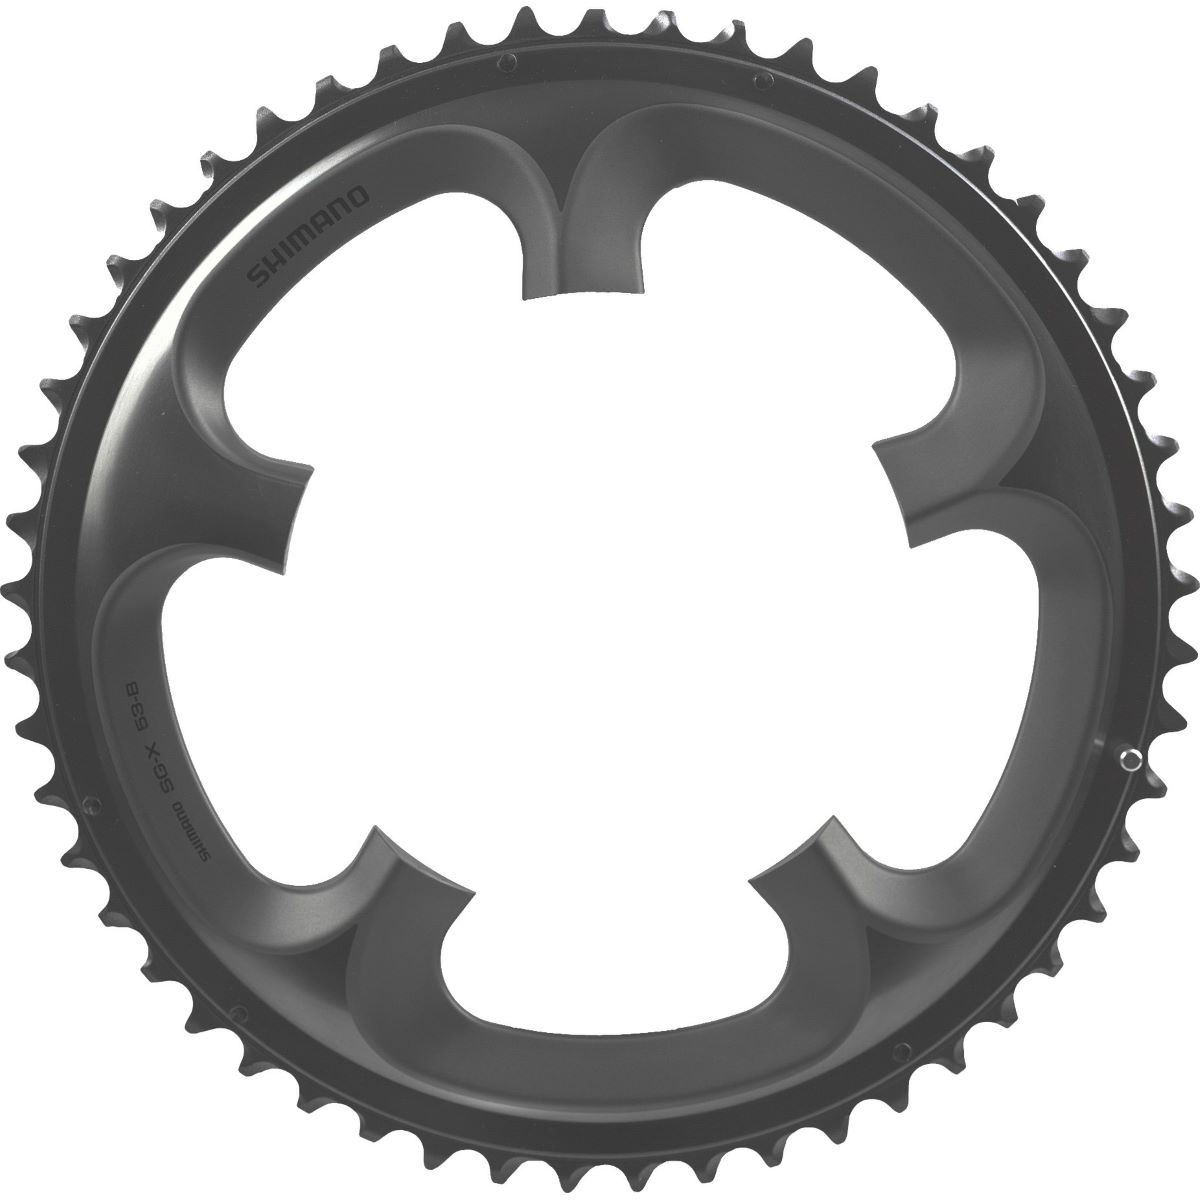 Shimano Ultegra Fc6700 10sp Double Chainrings - 52t 10 Speed Grey